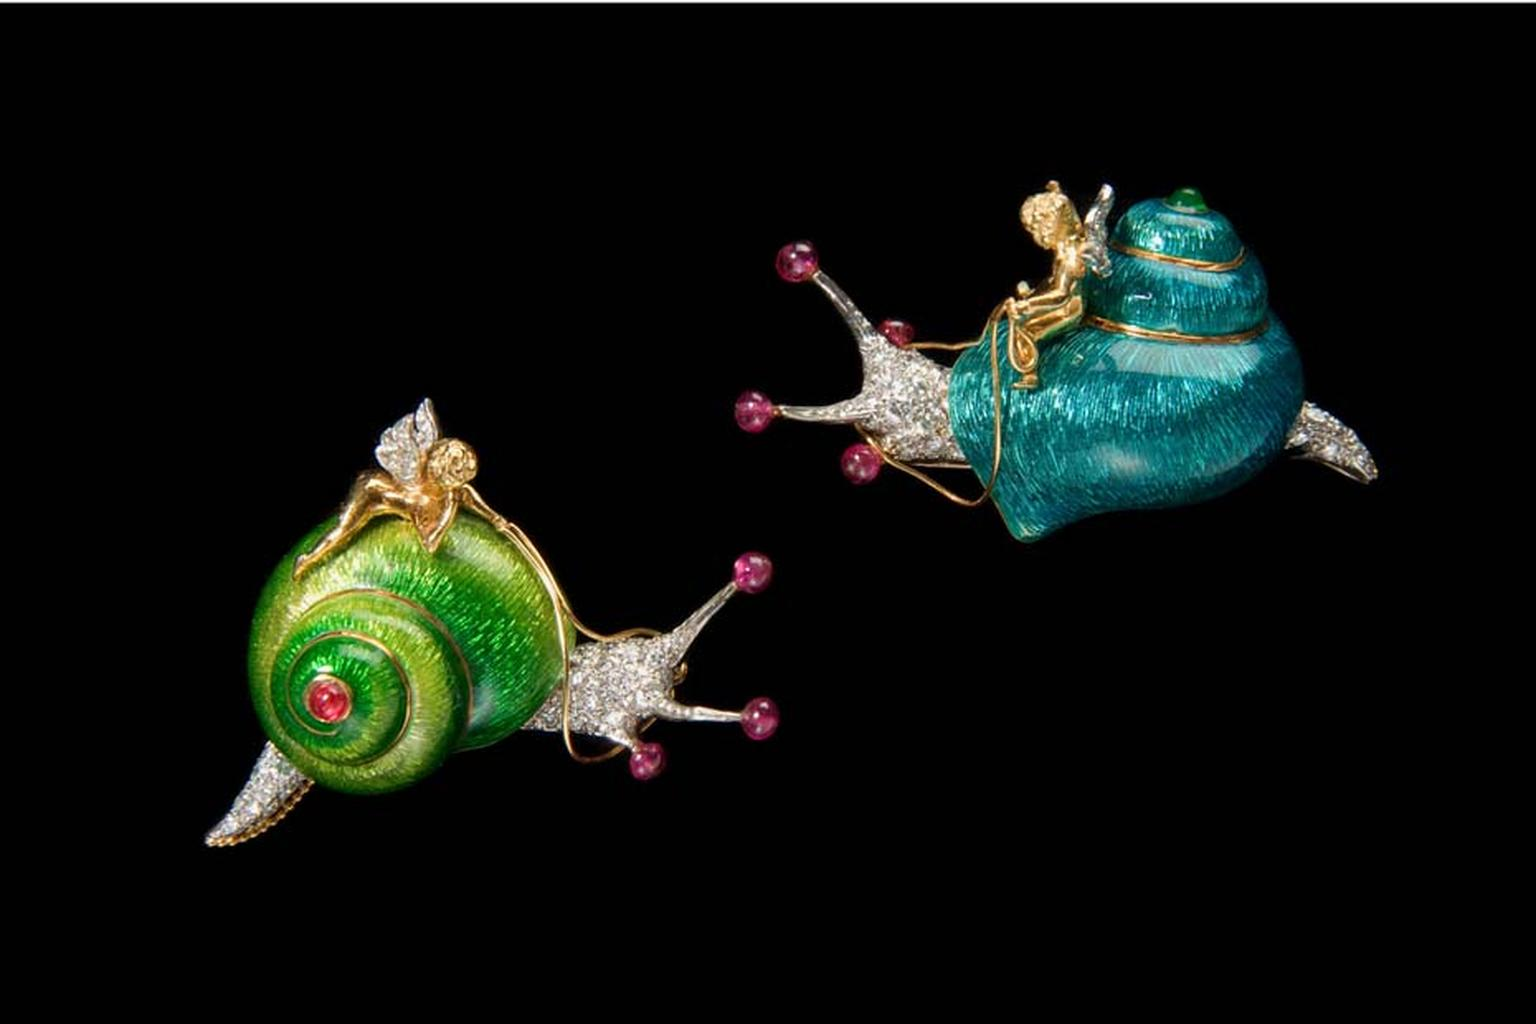 Verdura Snail and Cherub brooches with enamelwork, diamonds, rubies and emeralds, dating from 1968.